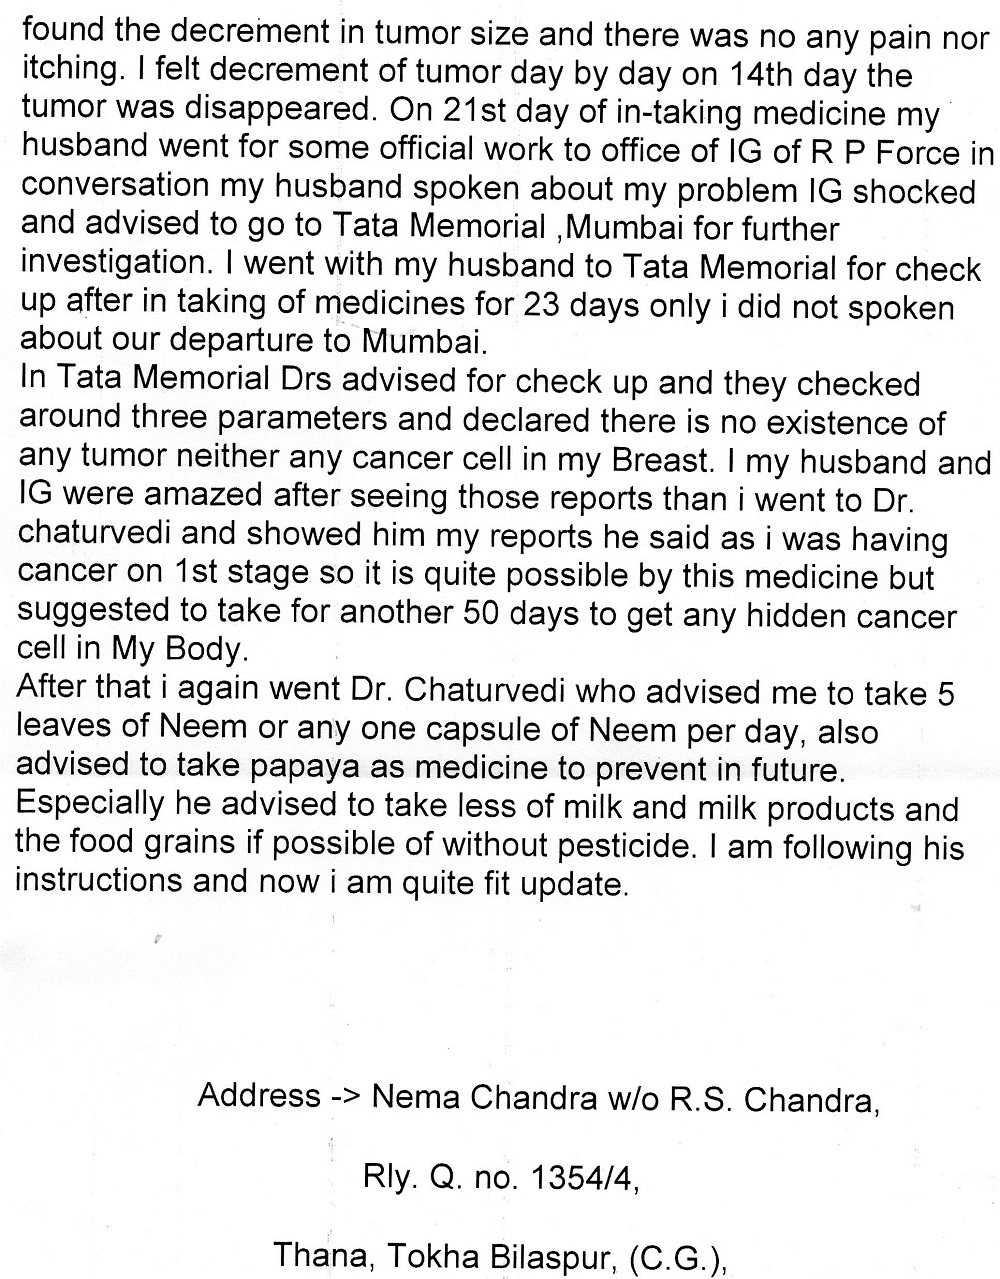 neema-candra-breast-cancer-patient-treatment-8